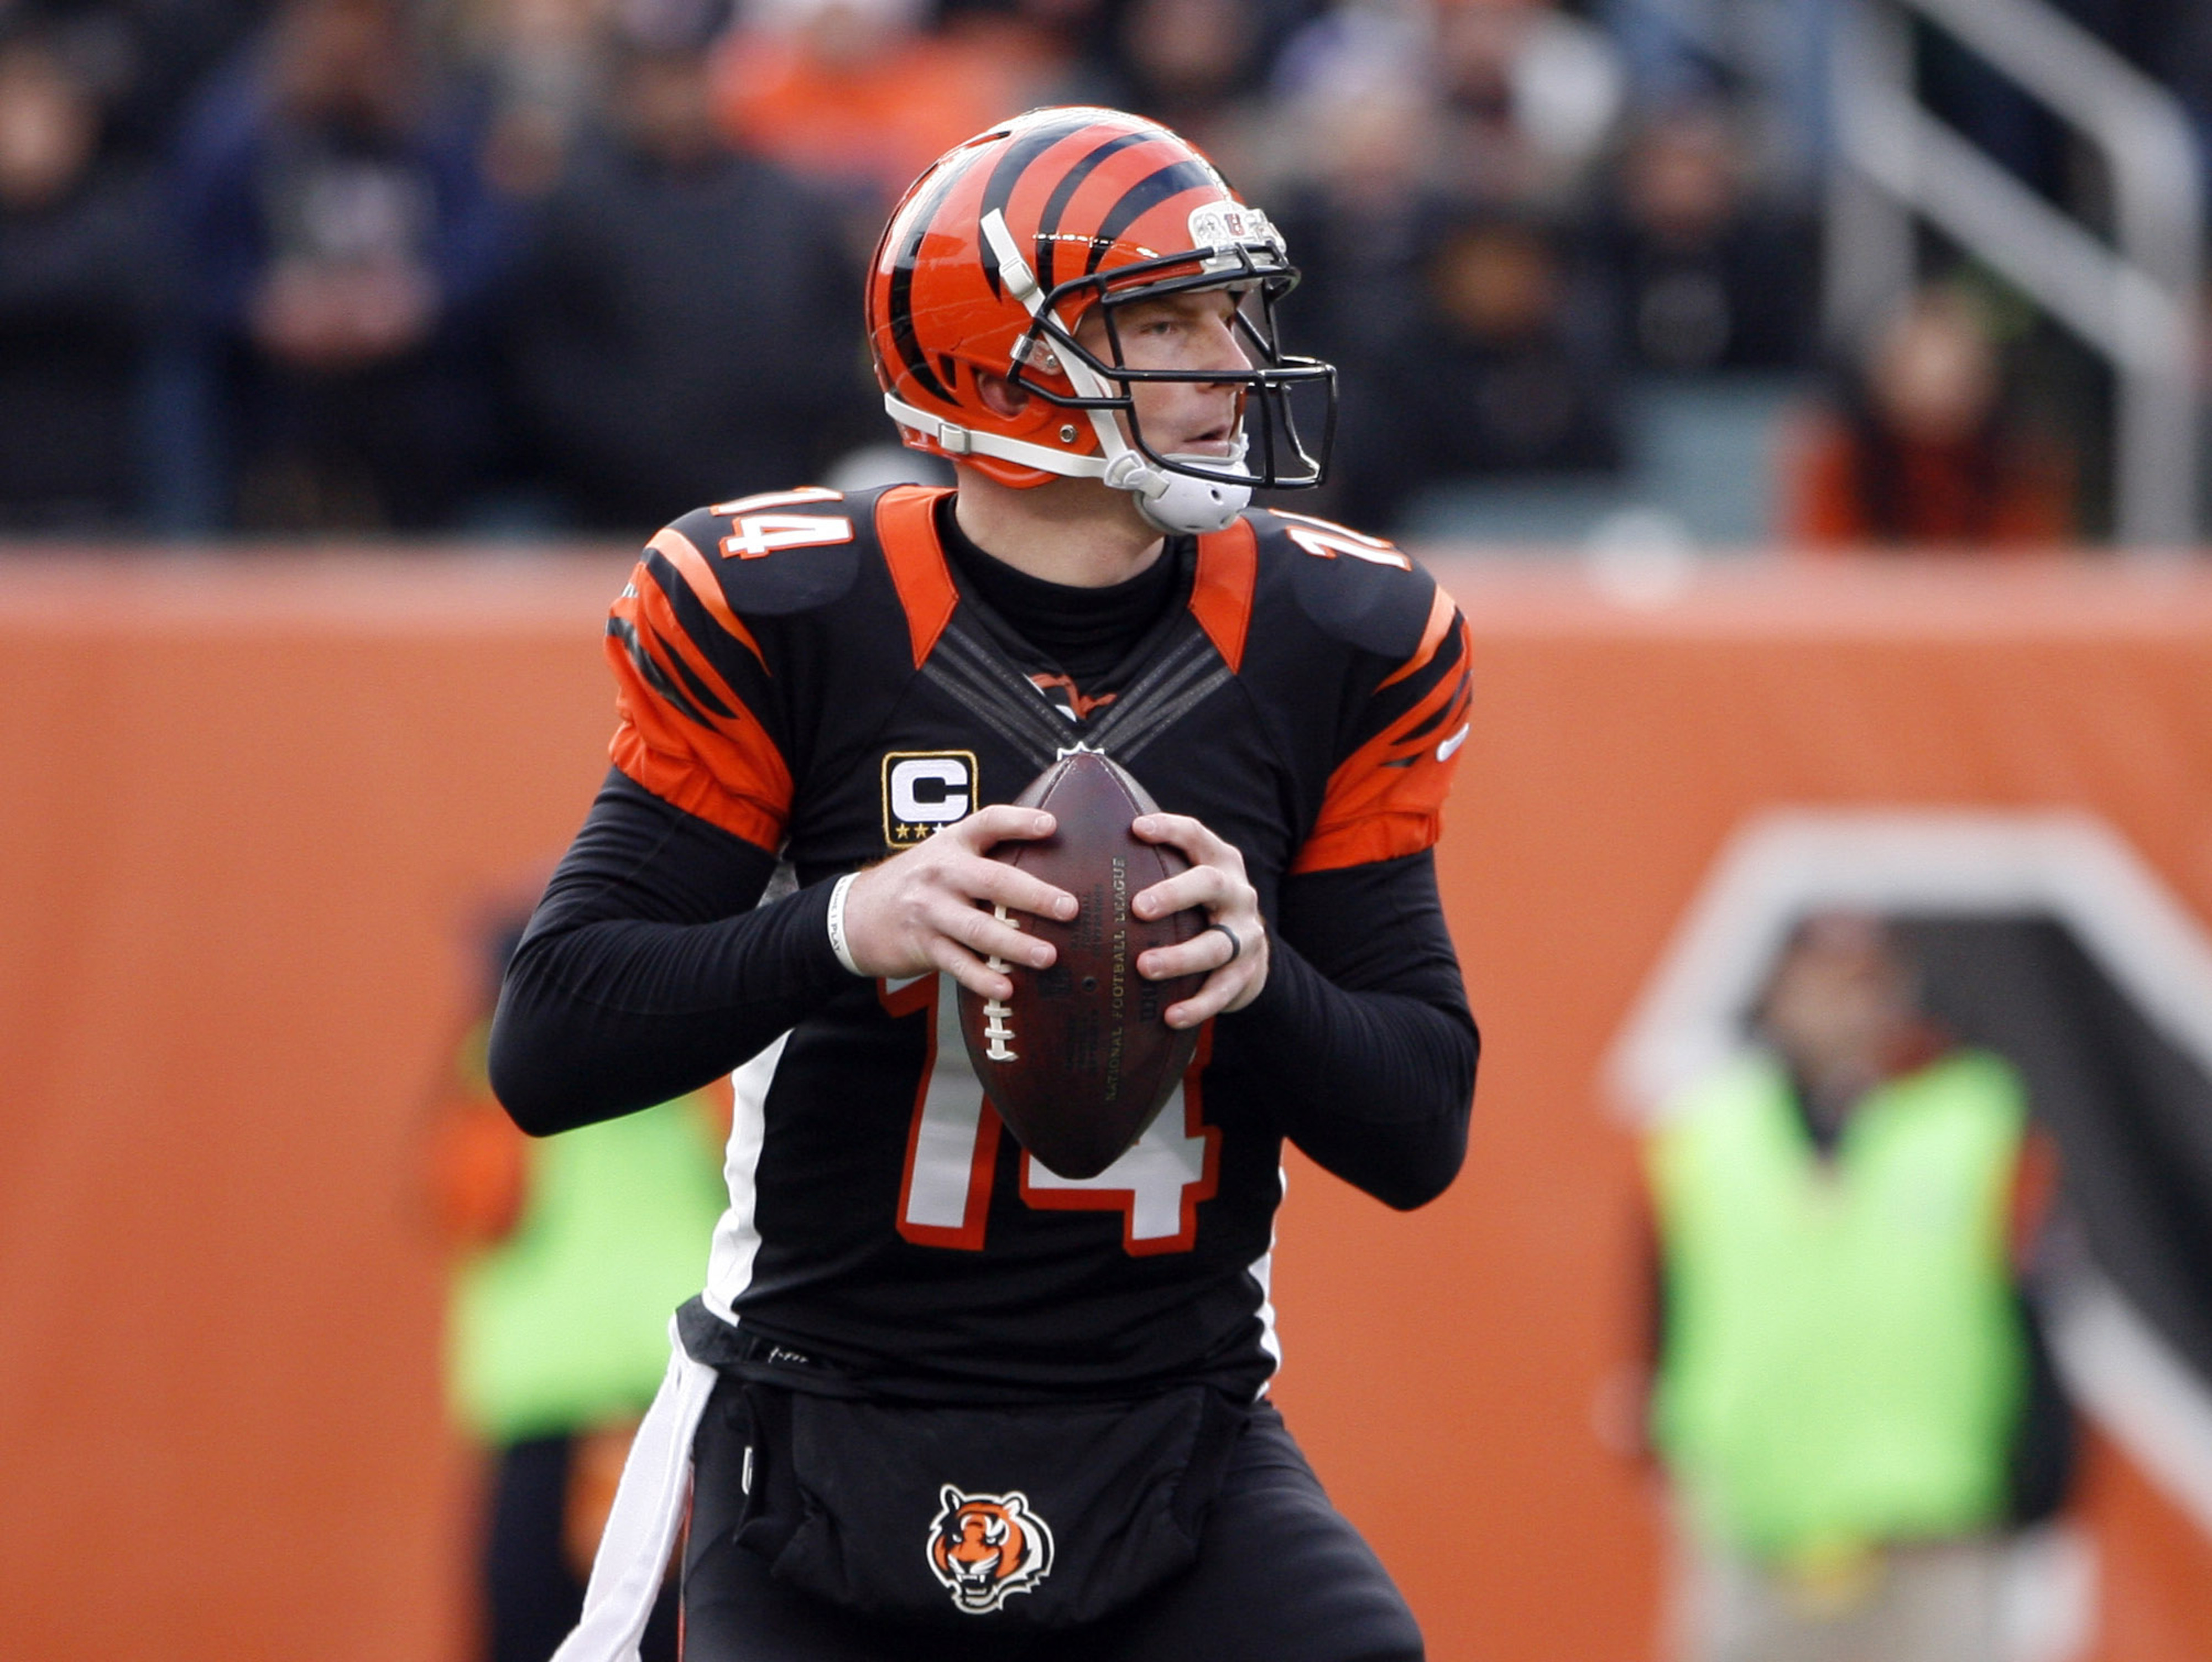 Chargers vs. Bengals 2014, NFL Playoffs game preview: Cincinnati hoping to stay unbeaten at home